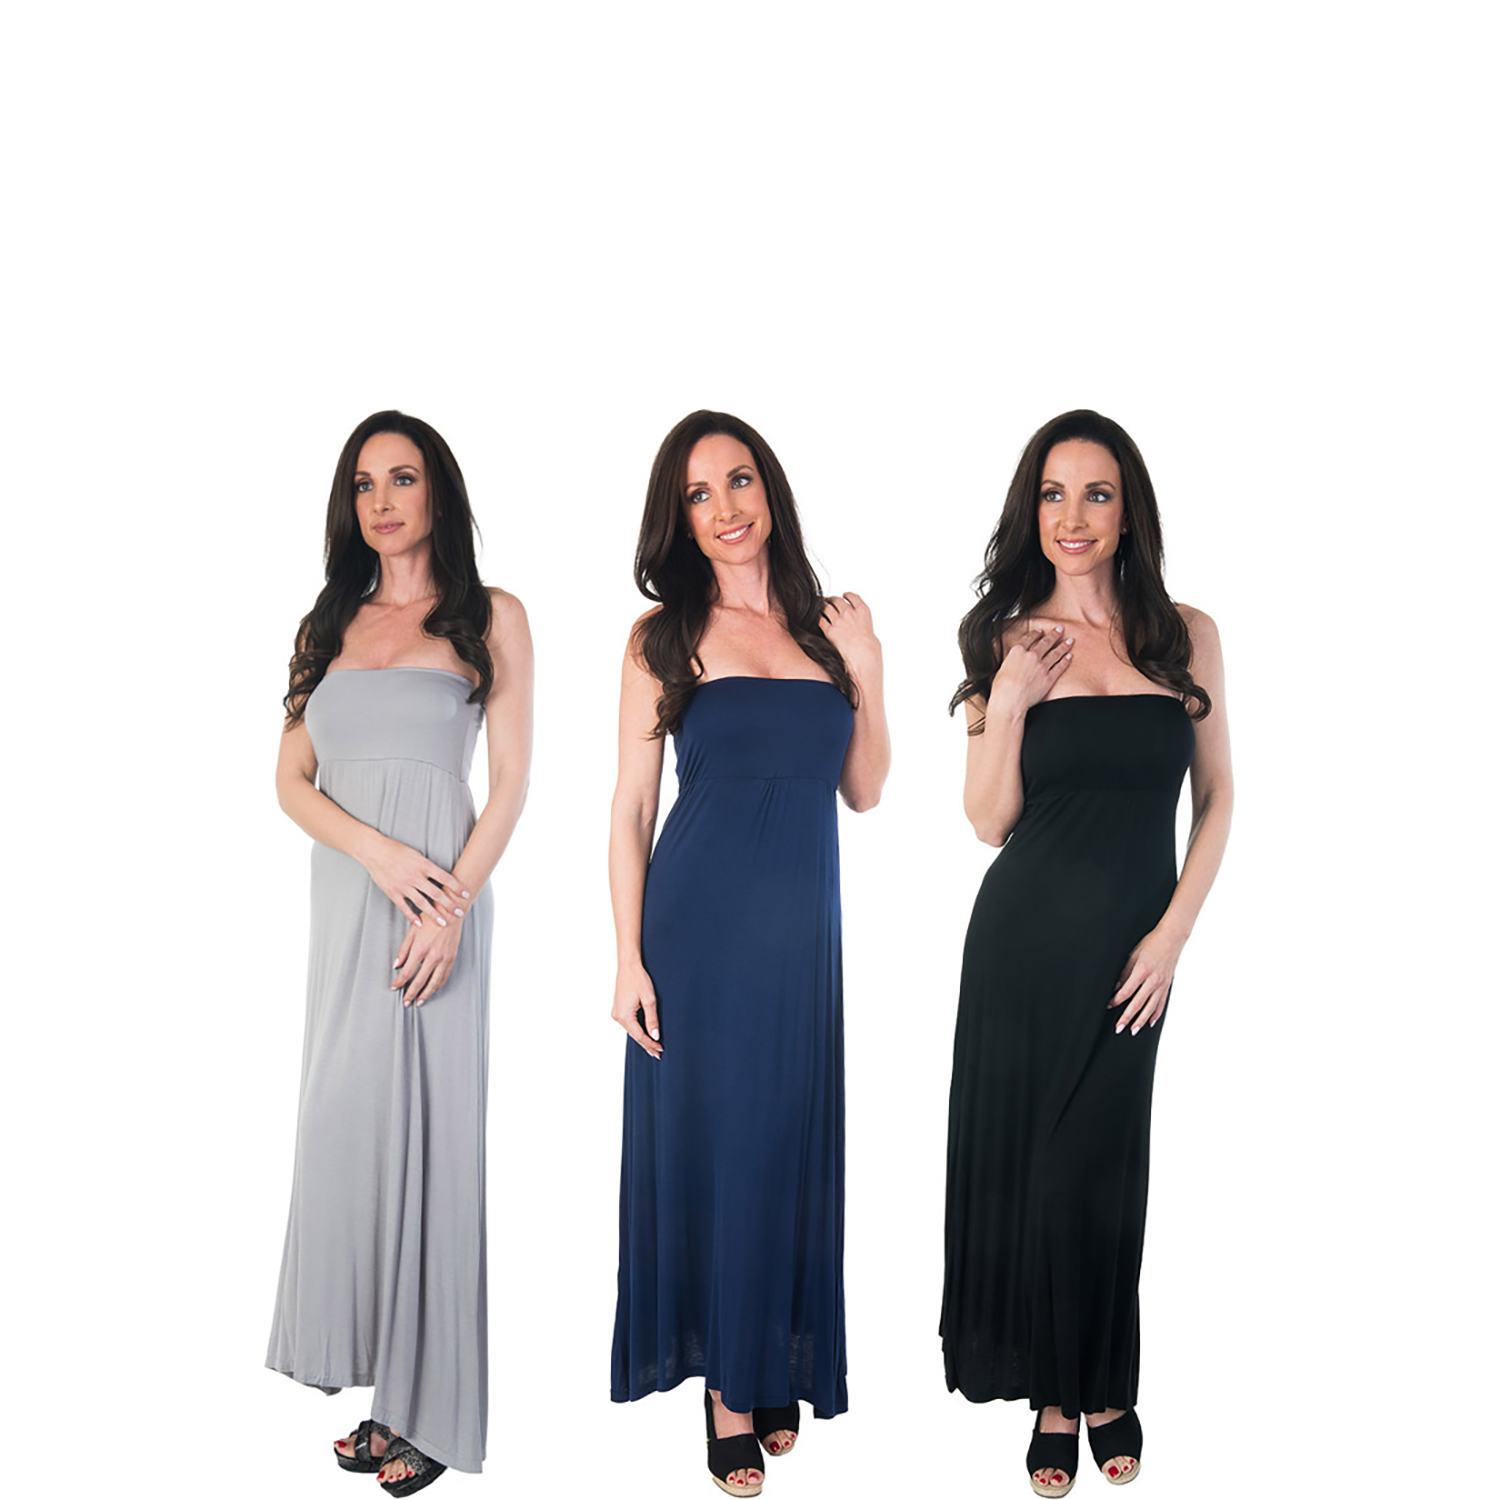 Agiato Women's 2-in-1 Maxi Dress 3-Pack